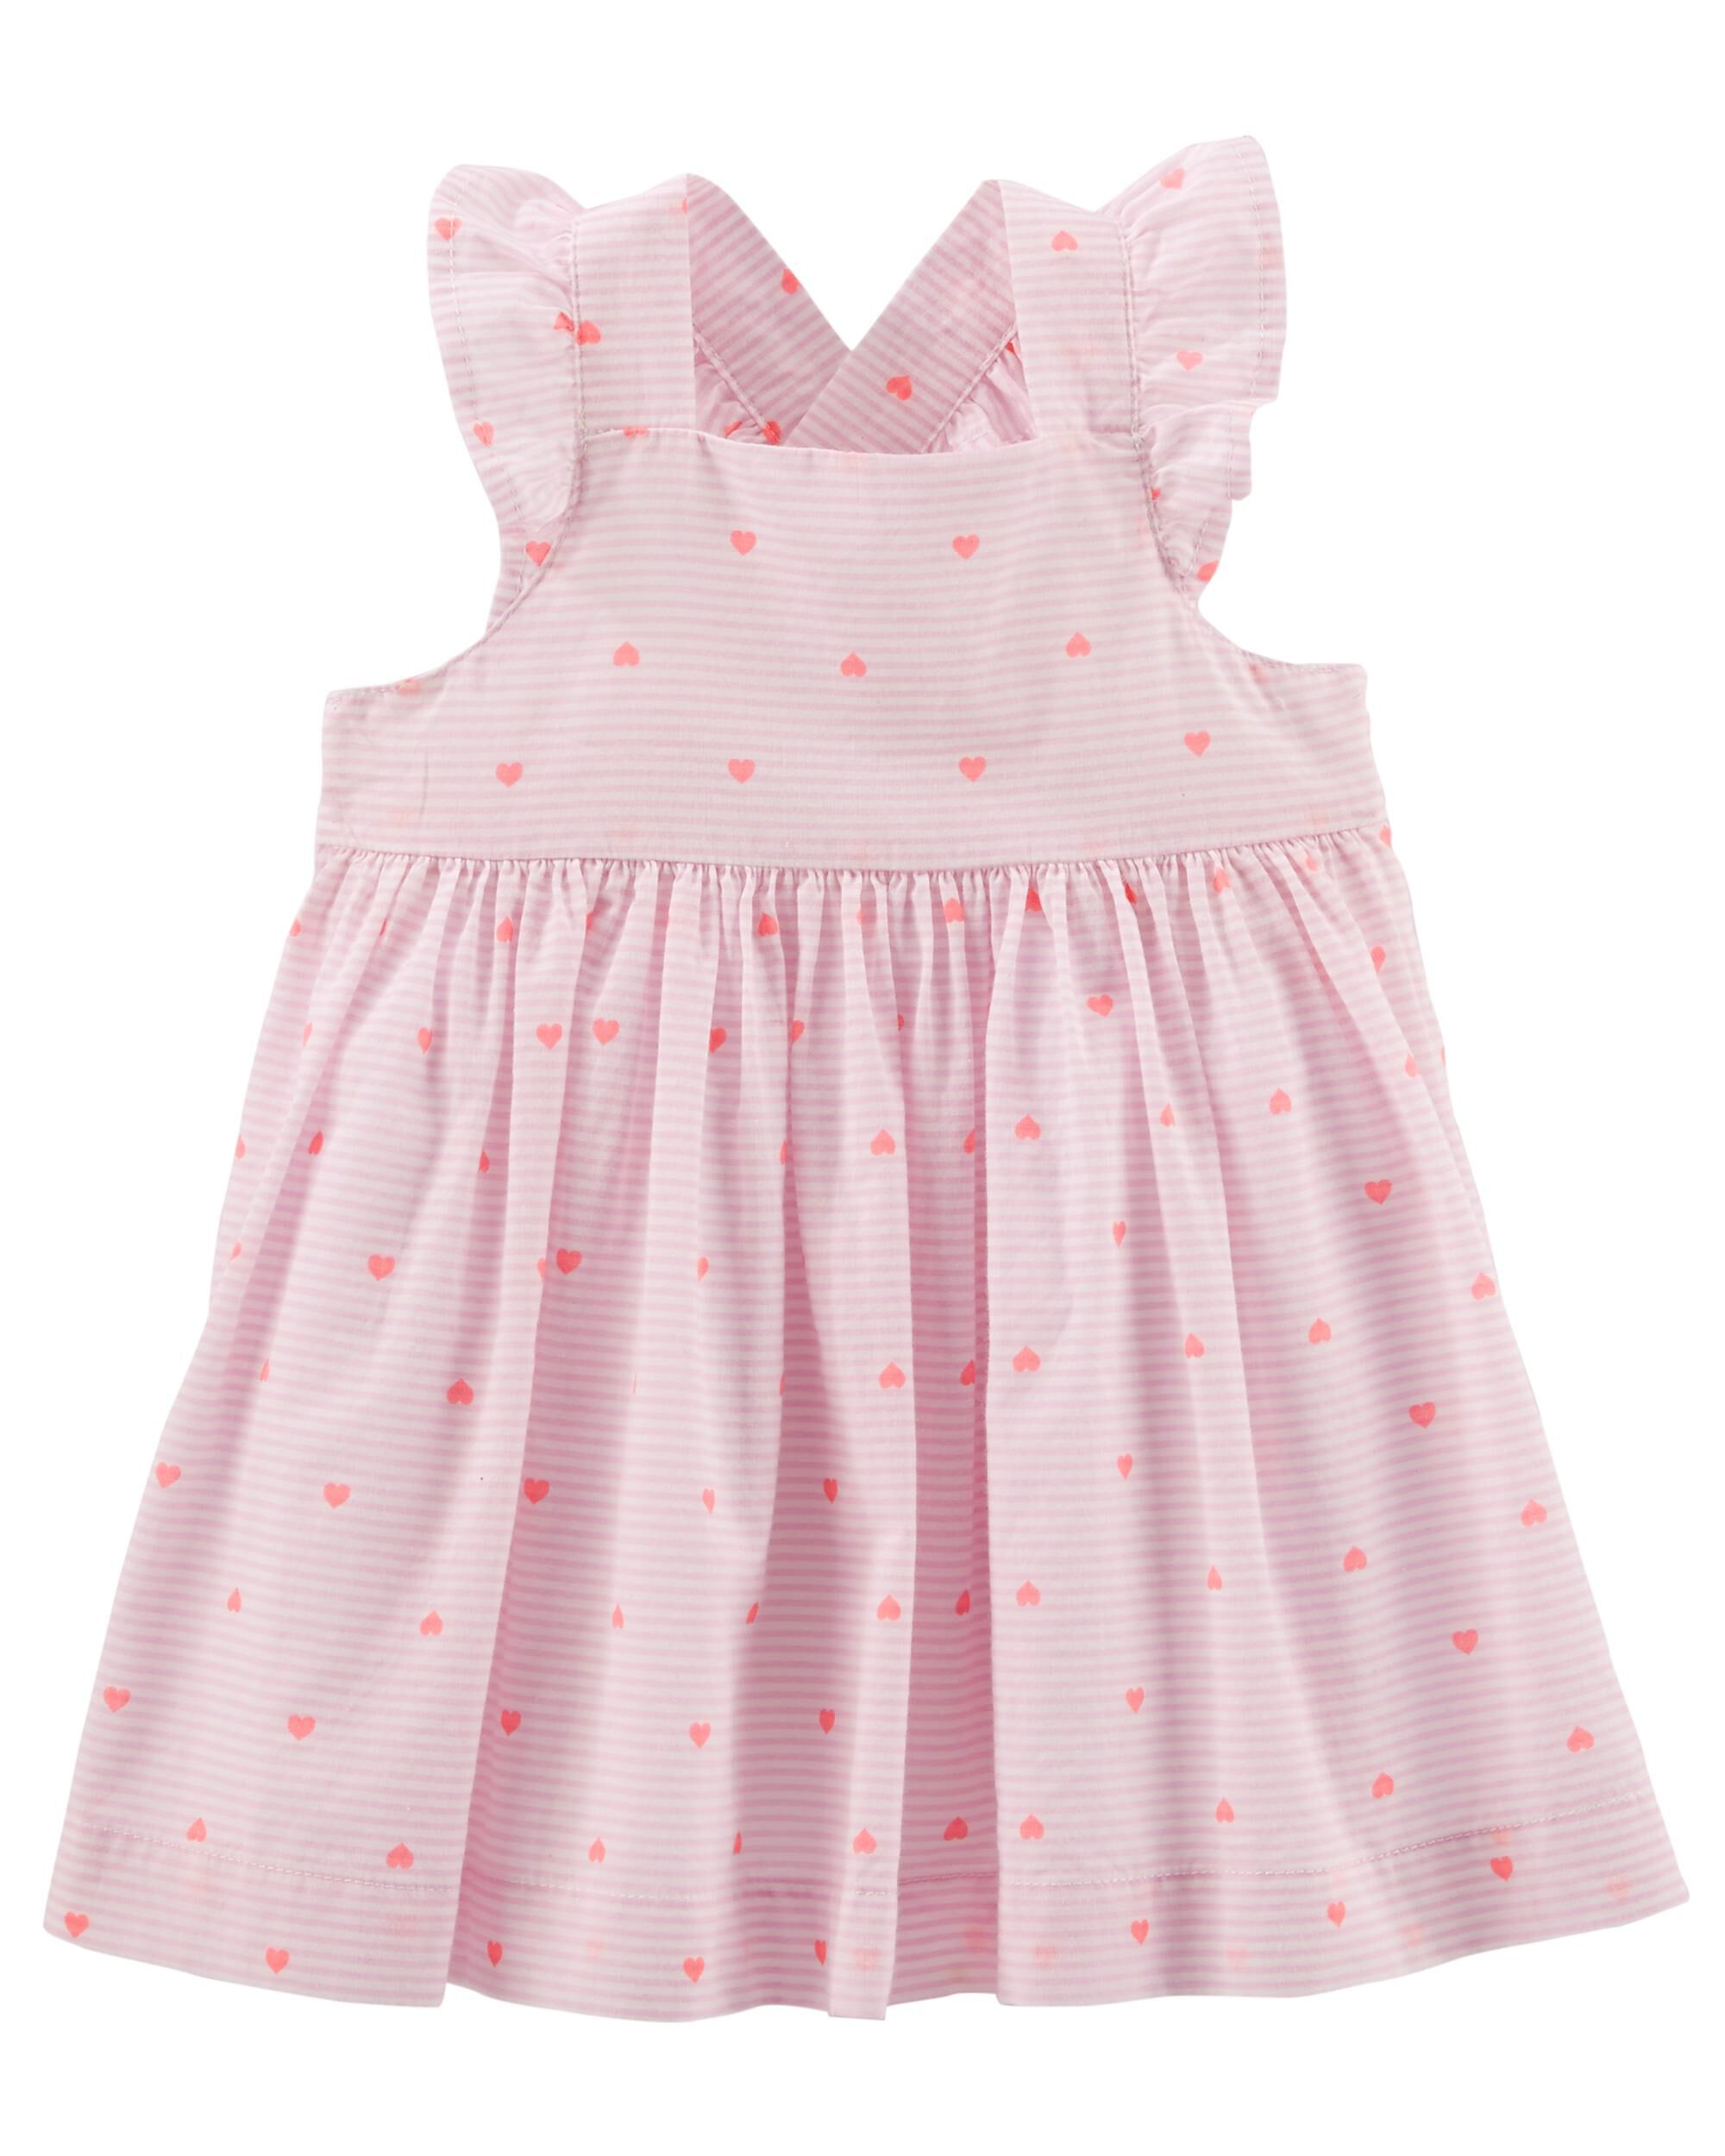 Find great deals on eBay for baby girl romper dress. Shop with confidence.